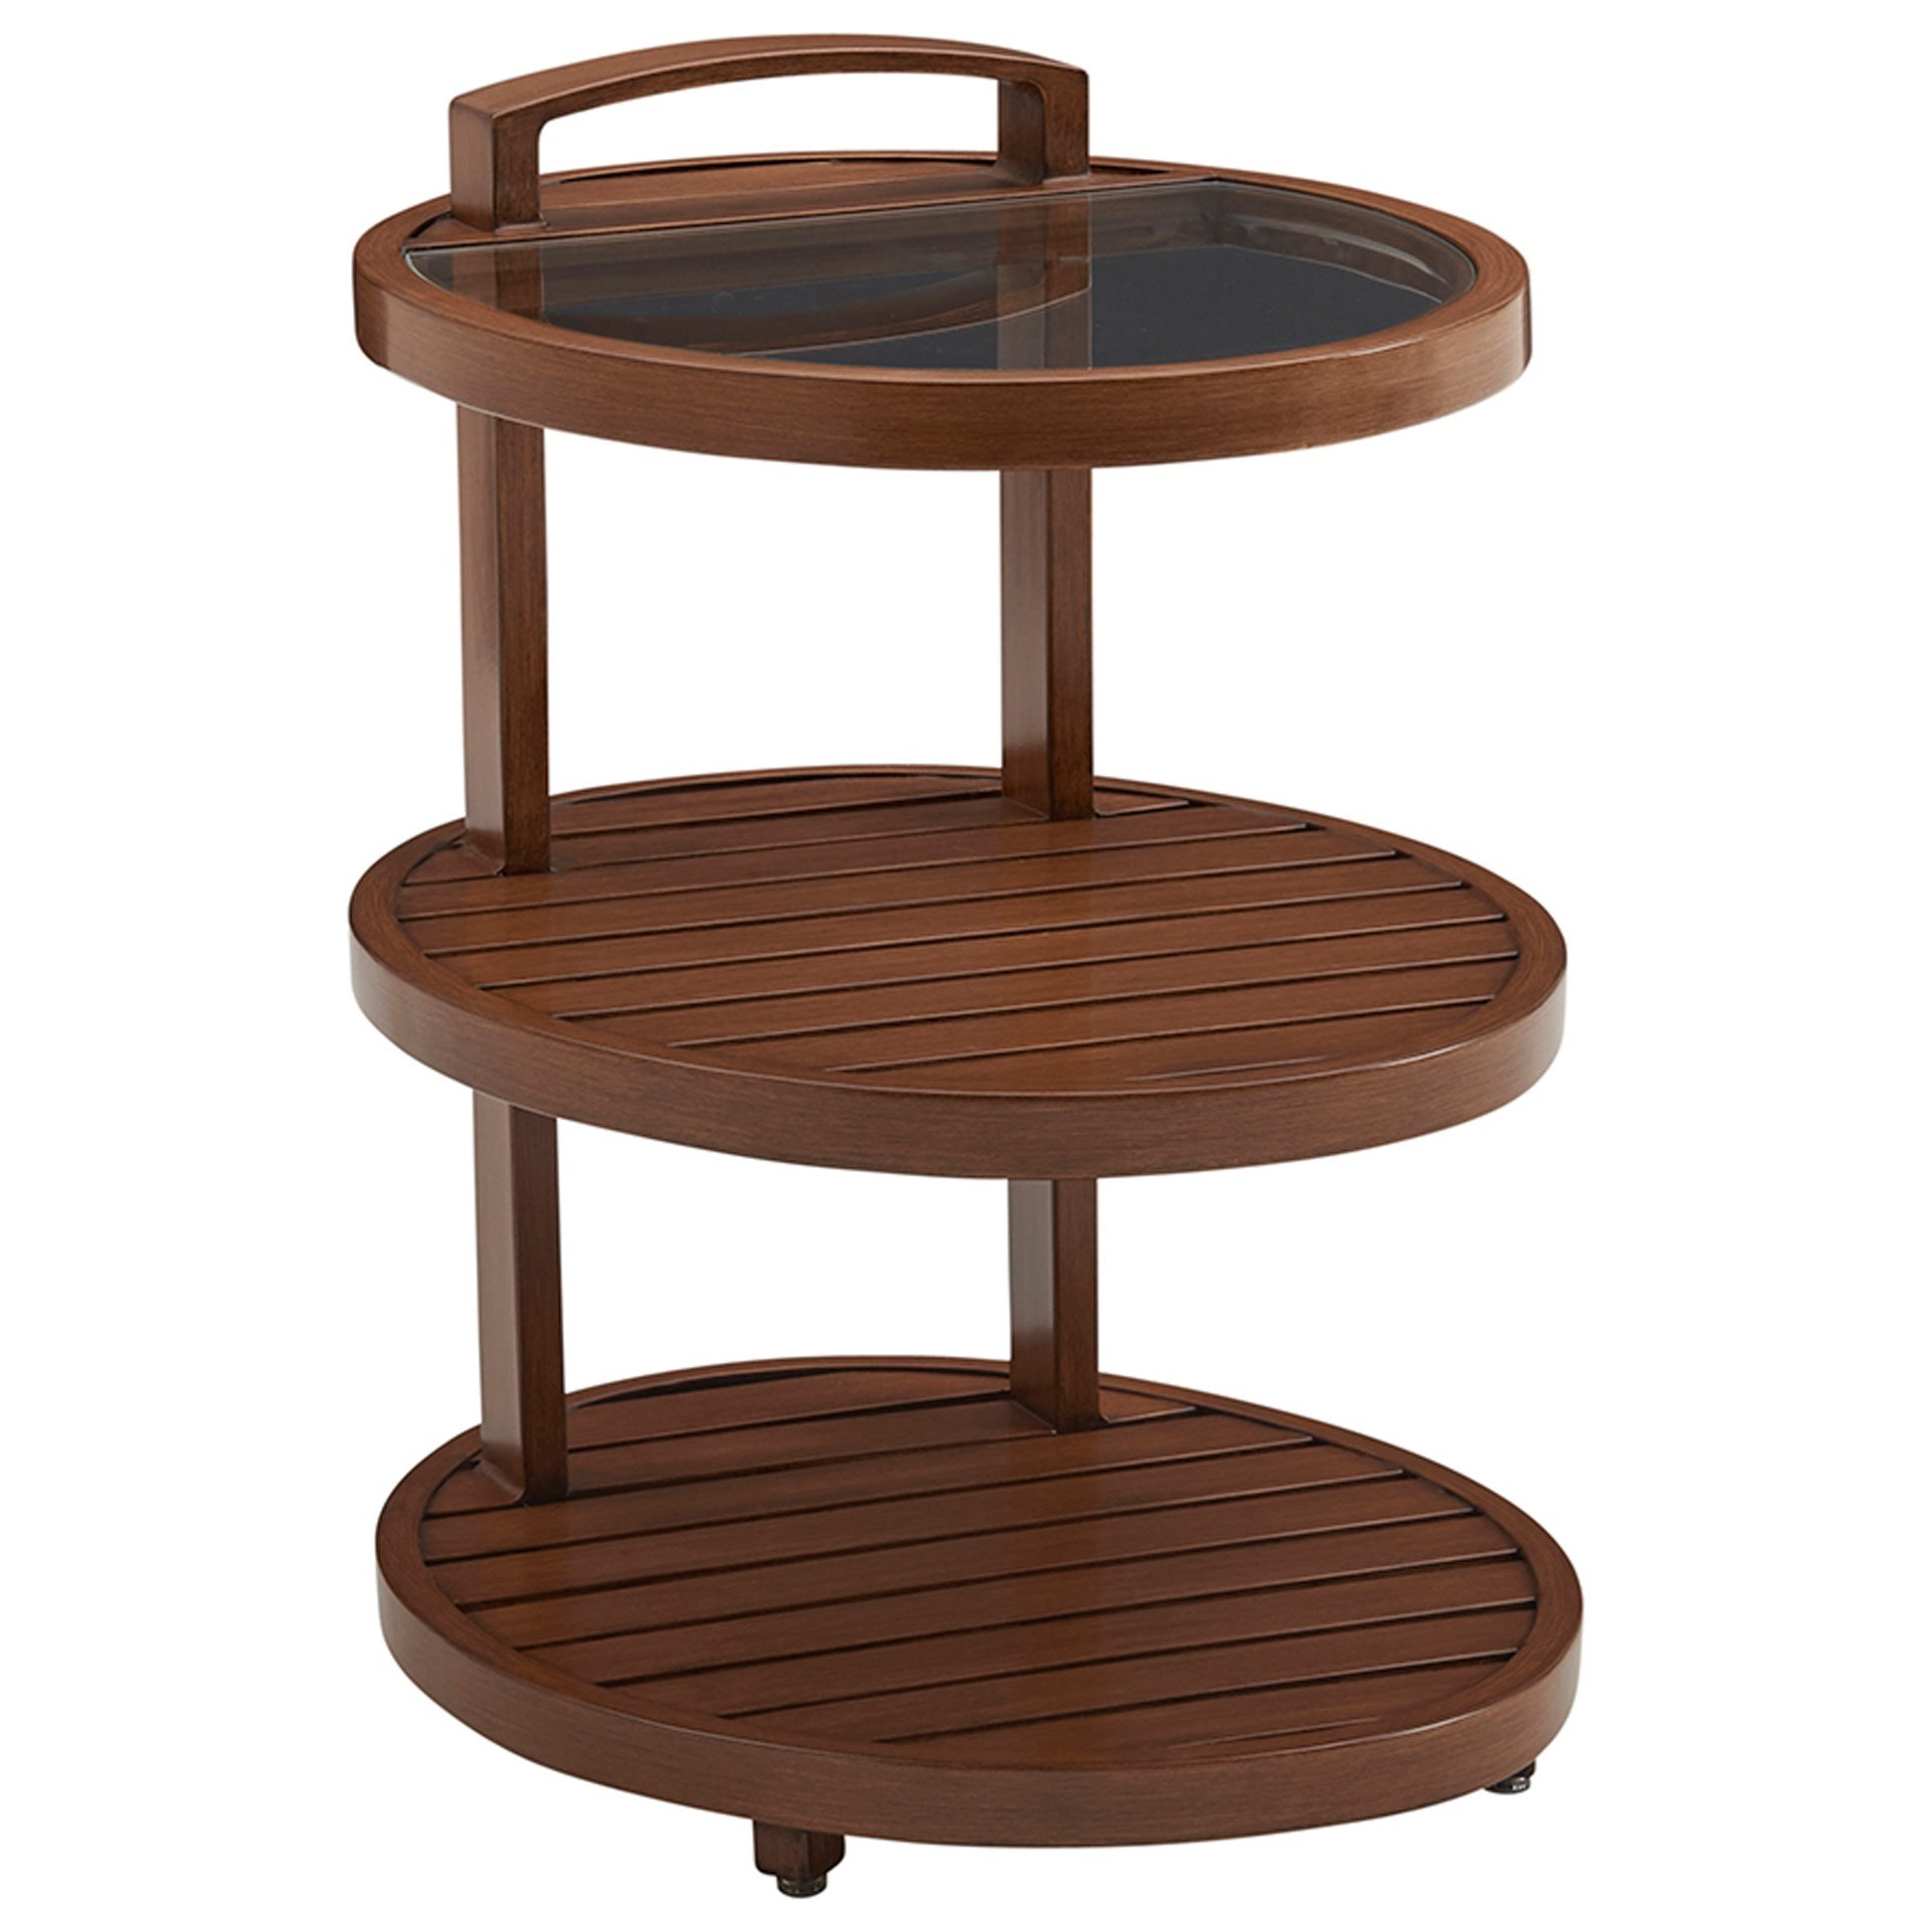 Harbor Isle Tiered End Table by Tommy Bahama Outdoor Living at Baer's Furniture